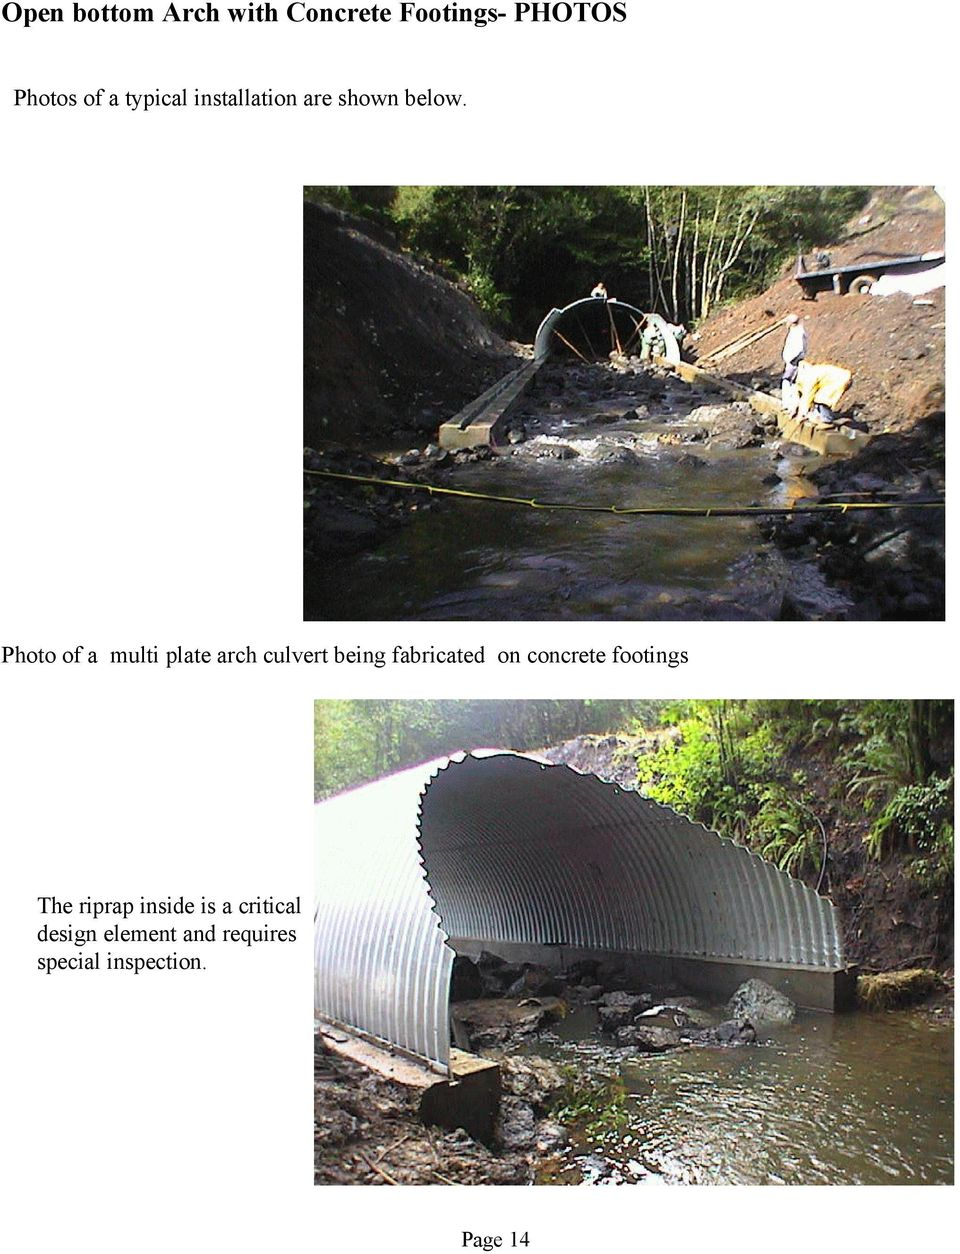 Photo of a multi plate arch culvert being fabricated on concrete